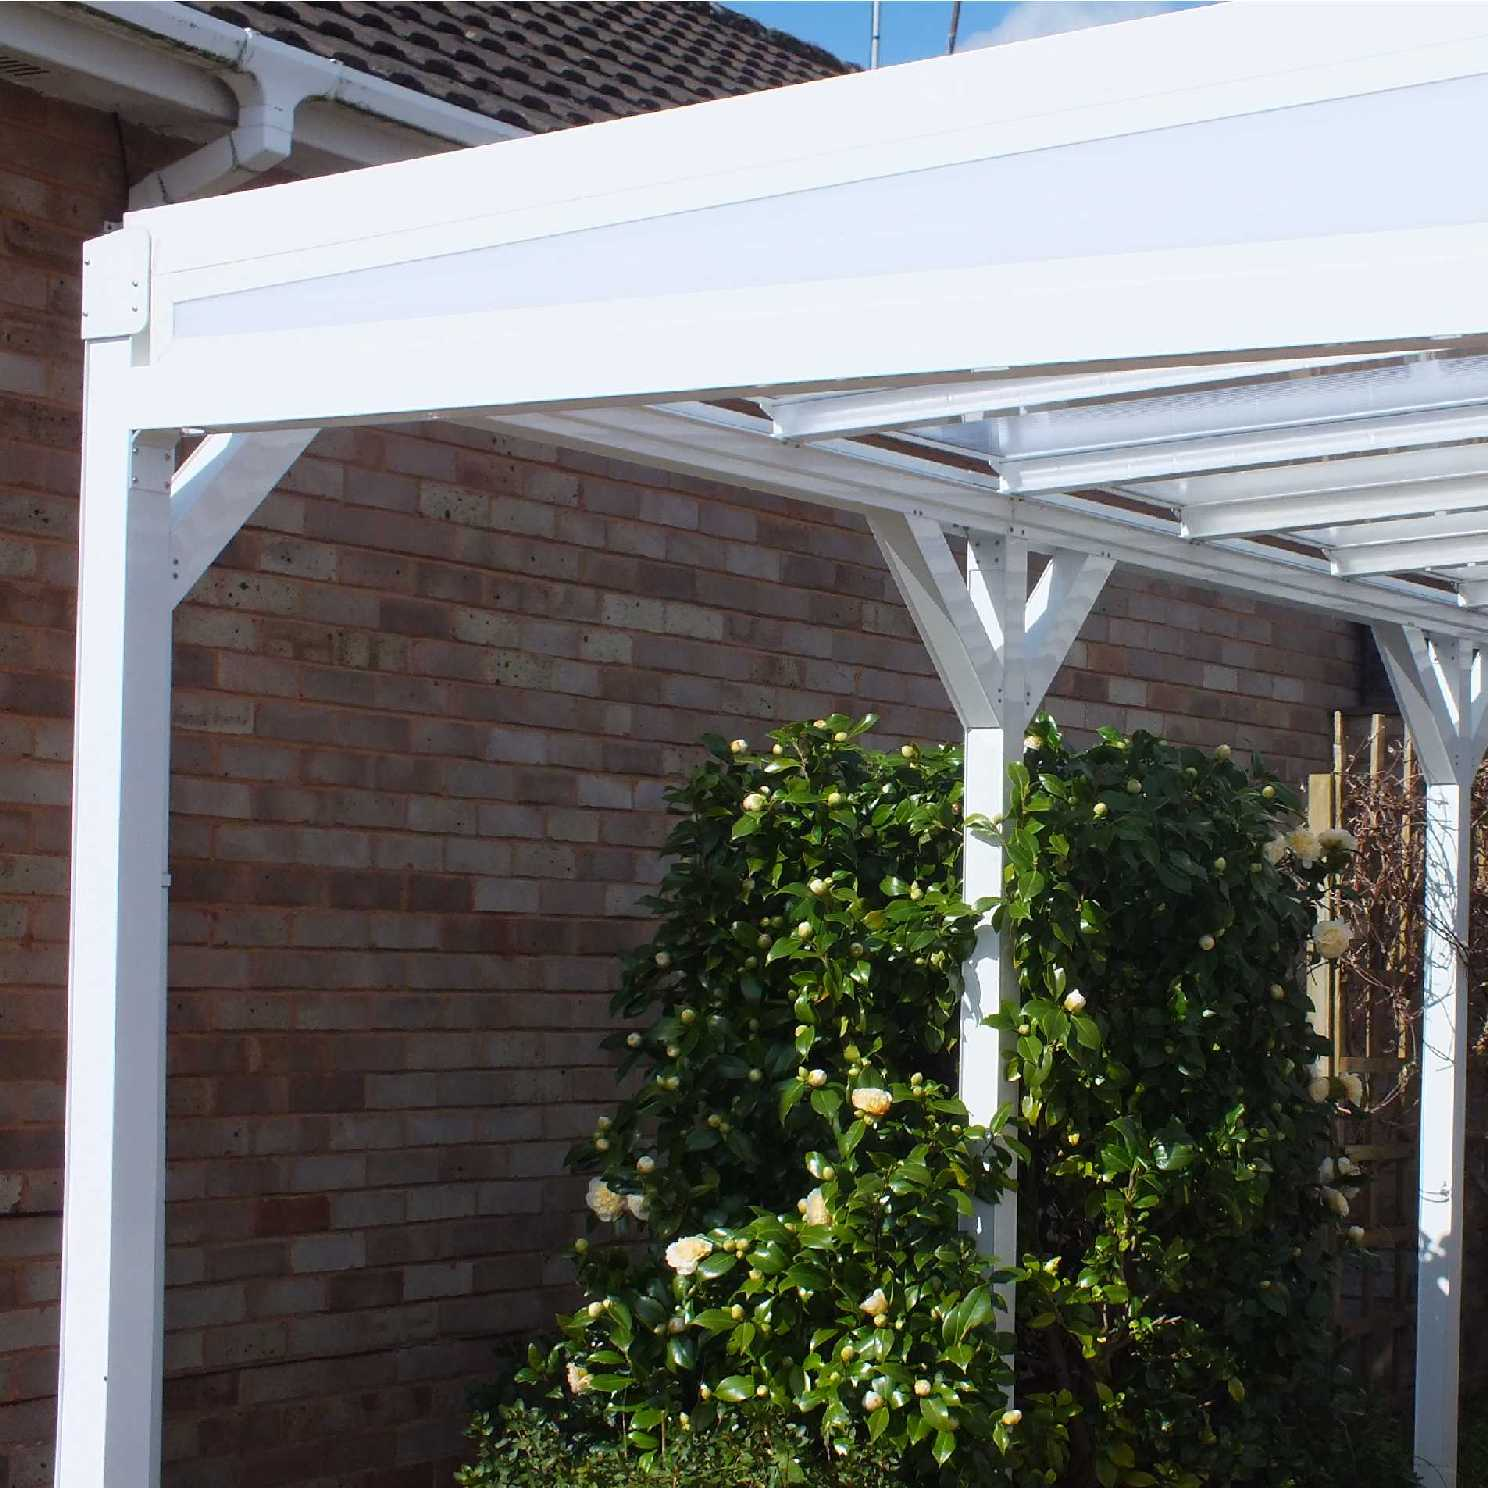 Omega Smart Lean-To Canopy with 16mm Polycarbonate Glazing - 3.5m (W) x 4.5m (P), (3) Supporting Posts from Omega Build